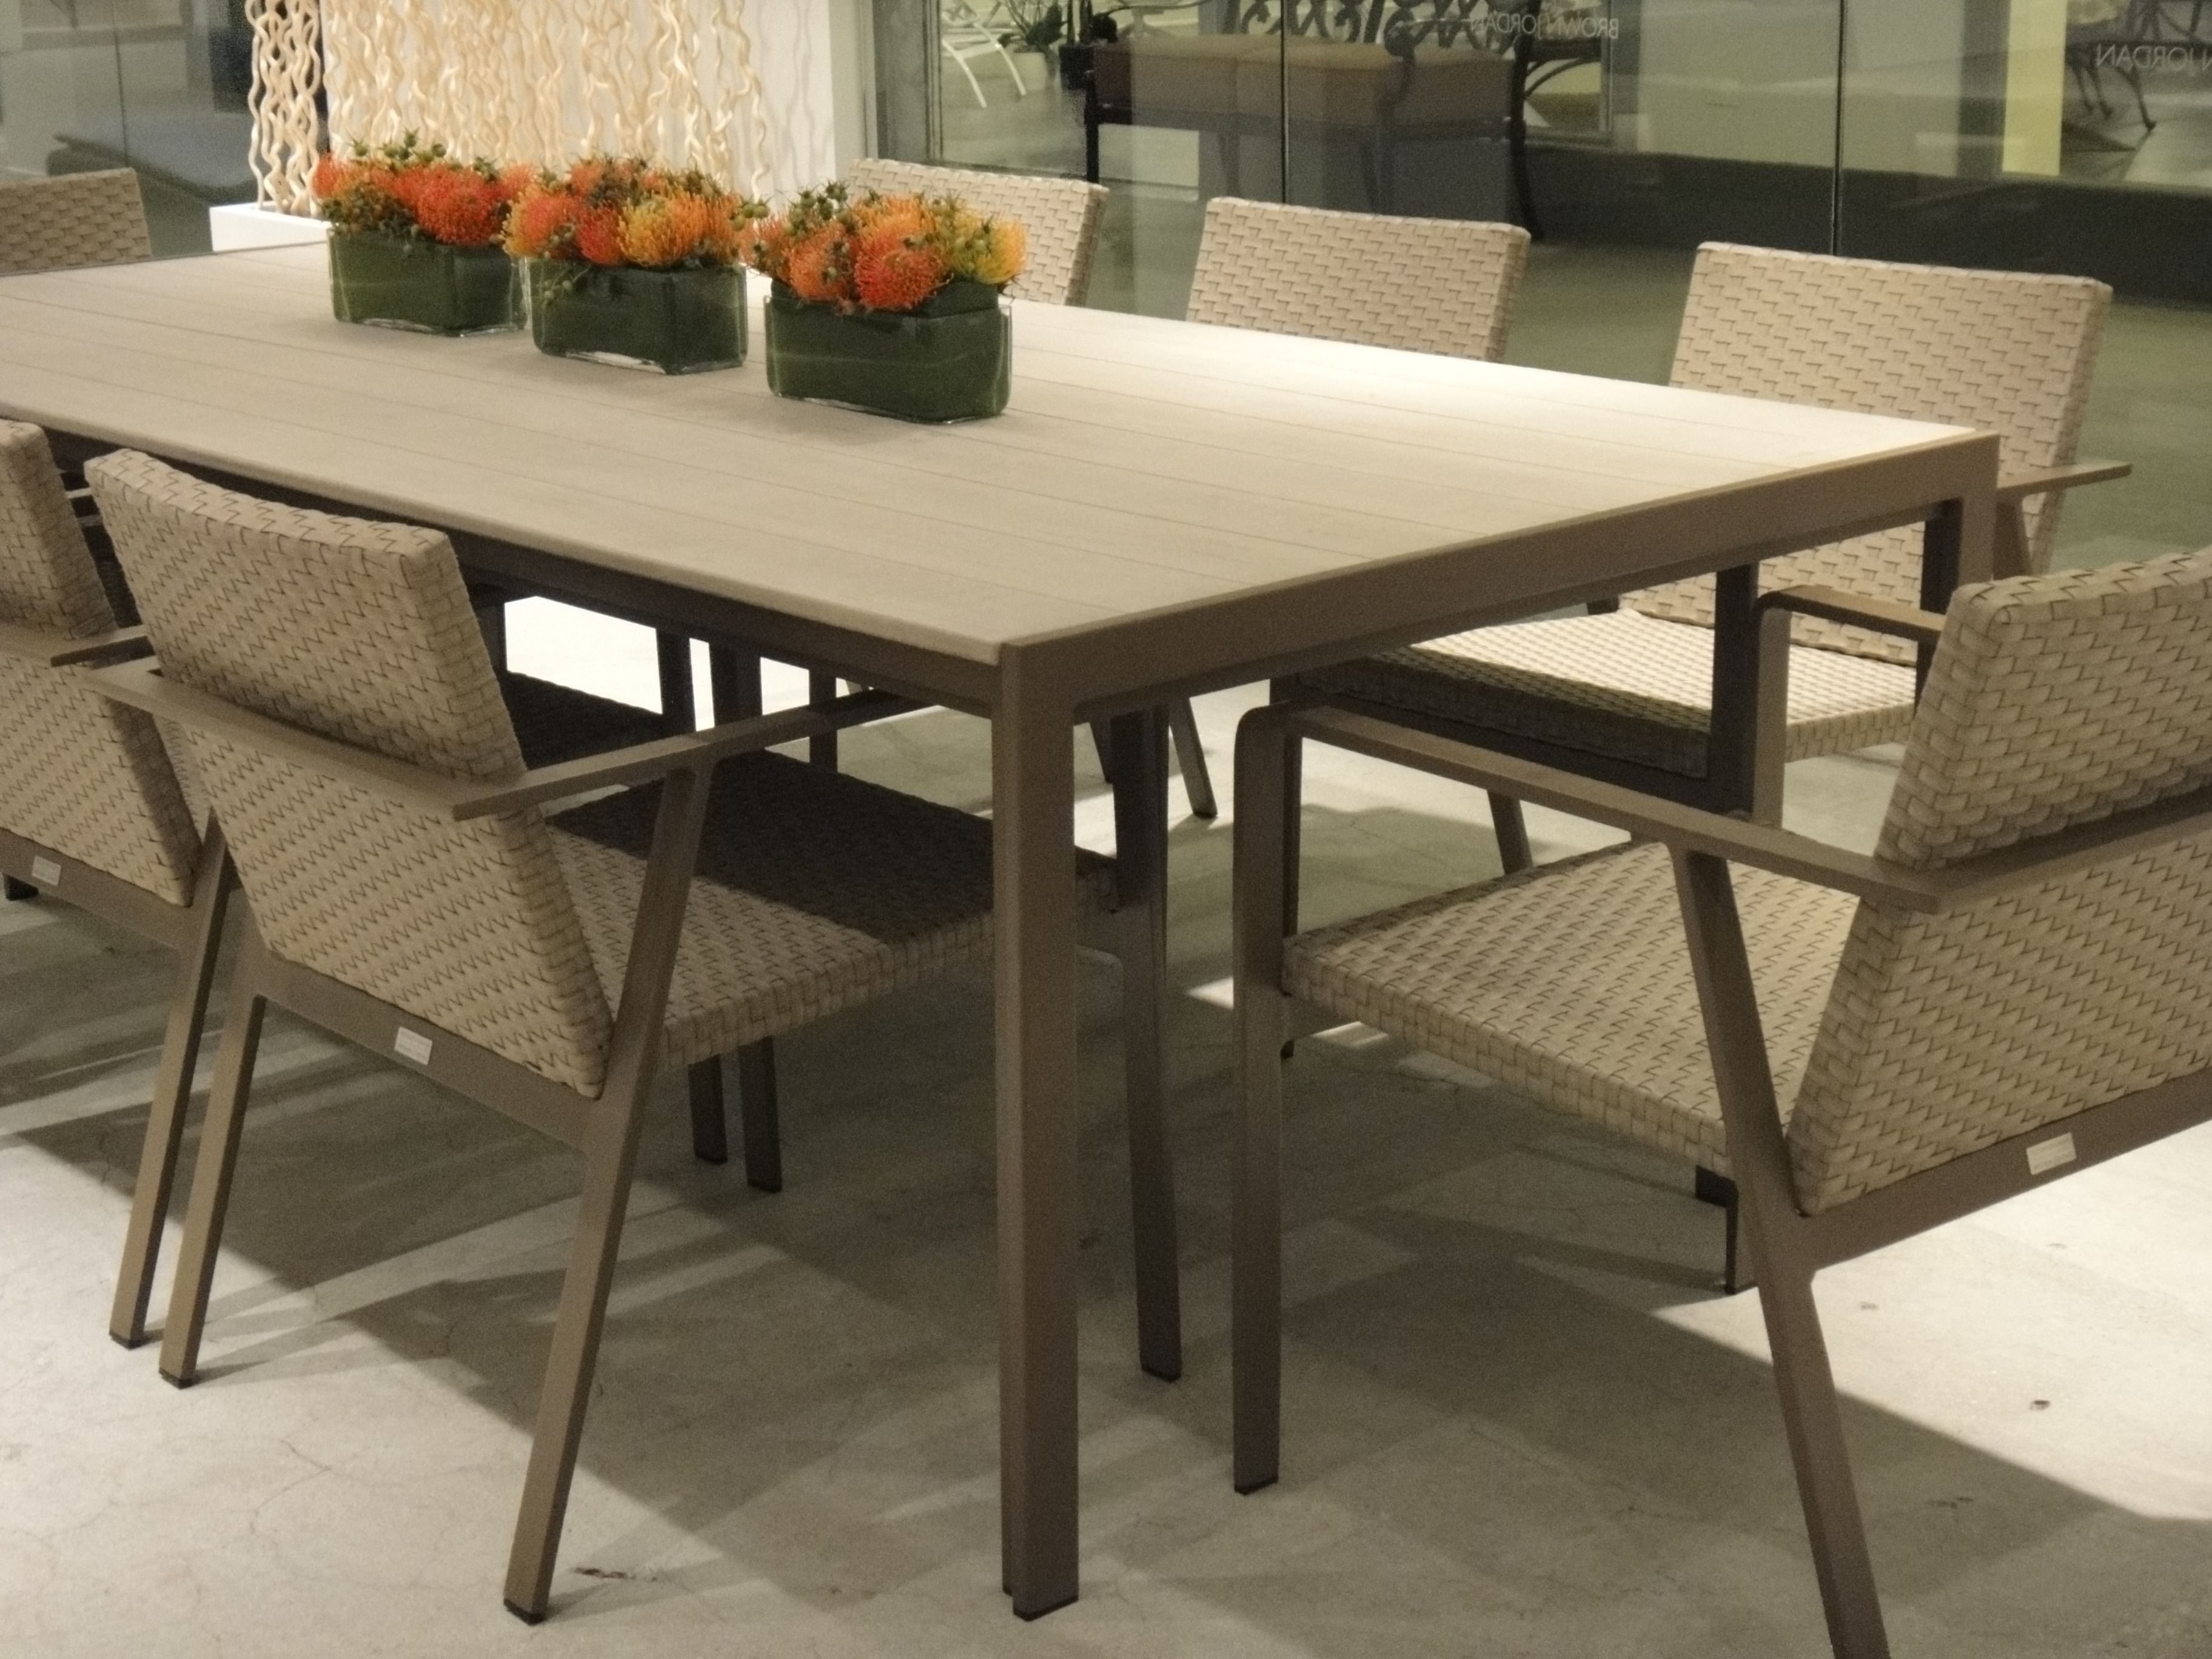 Elements Dining Table Made Of Resinwood And Powder Coated Aluminum